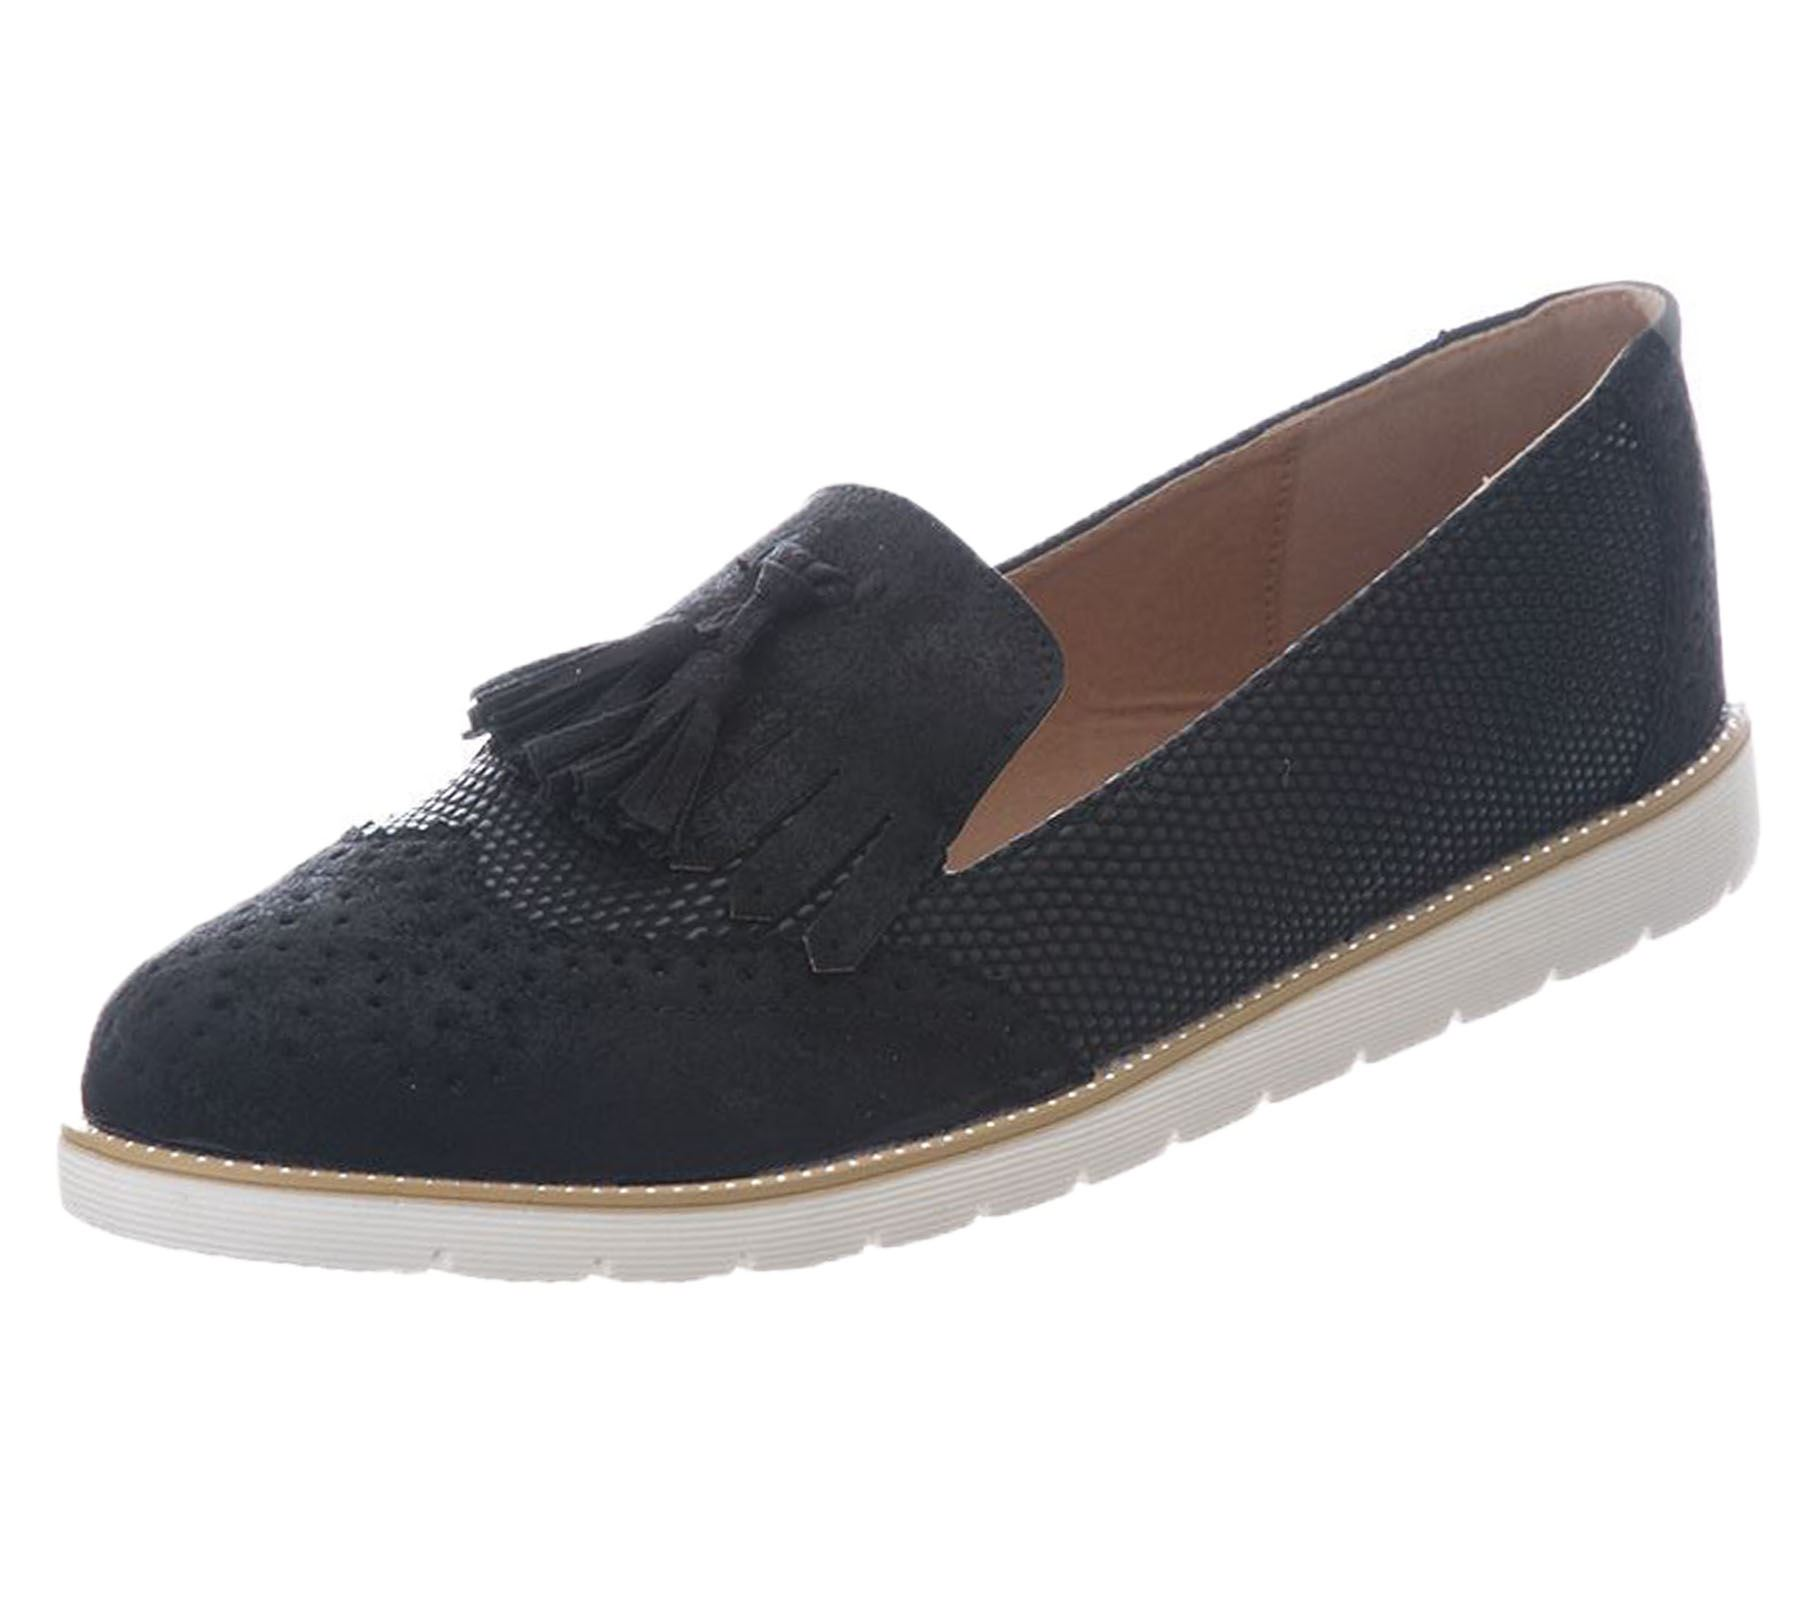 Ladies-Brogue-Slip-On-Tassel-Womens-Oxford-Smart-Office-Loafers-Shoes